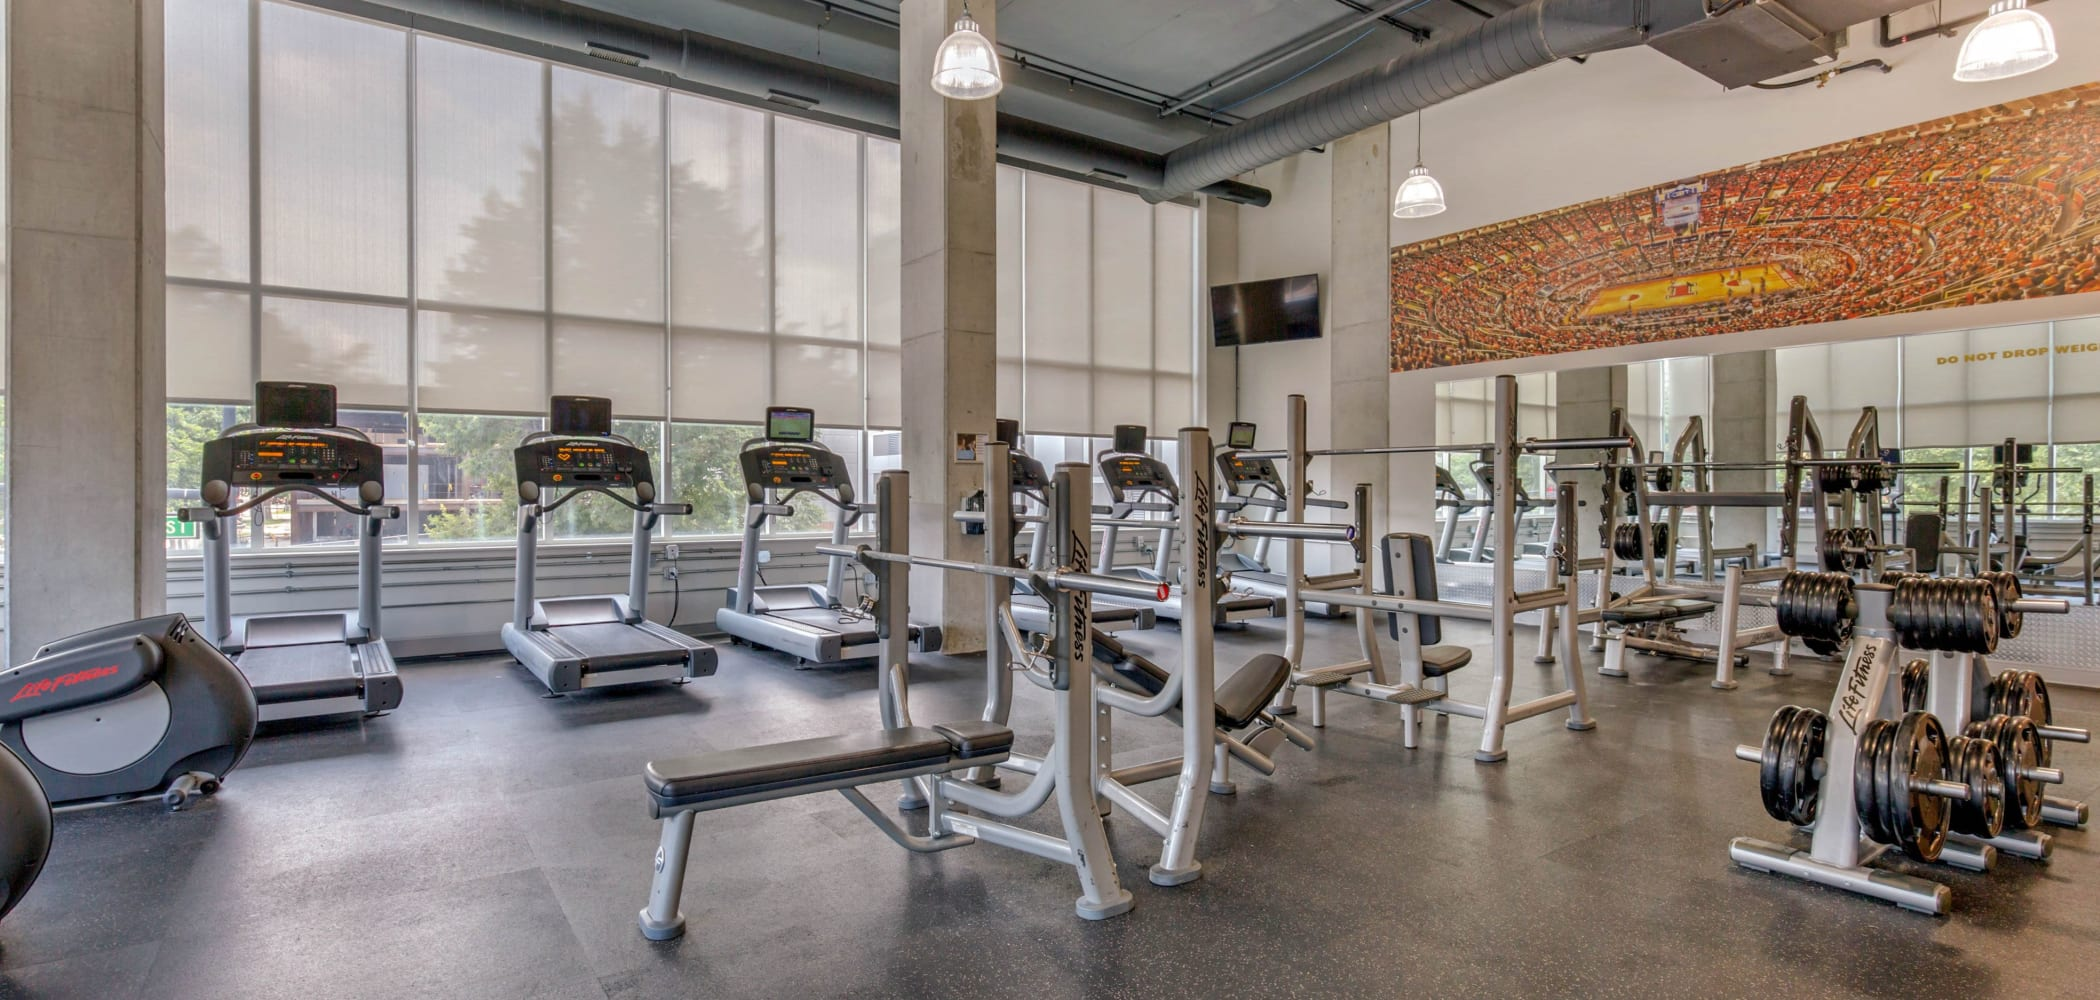 State-of-the-art fitness center at HERE Champaign in Champaign, Illinois